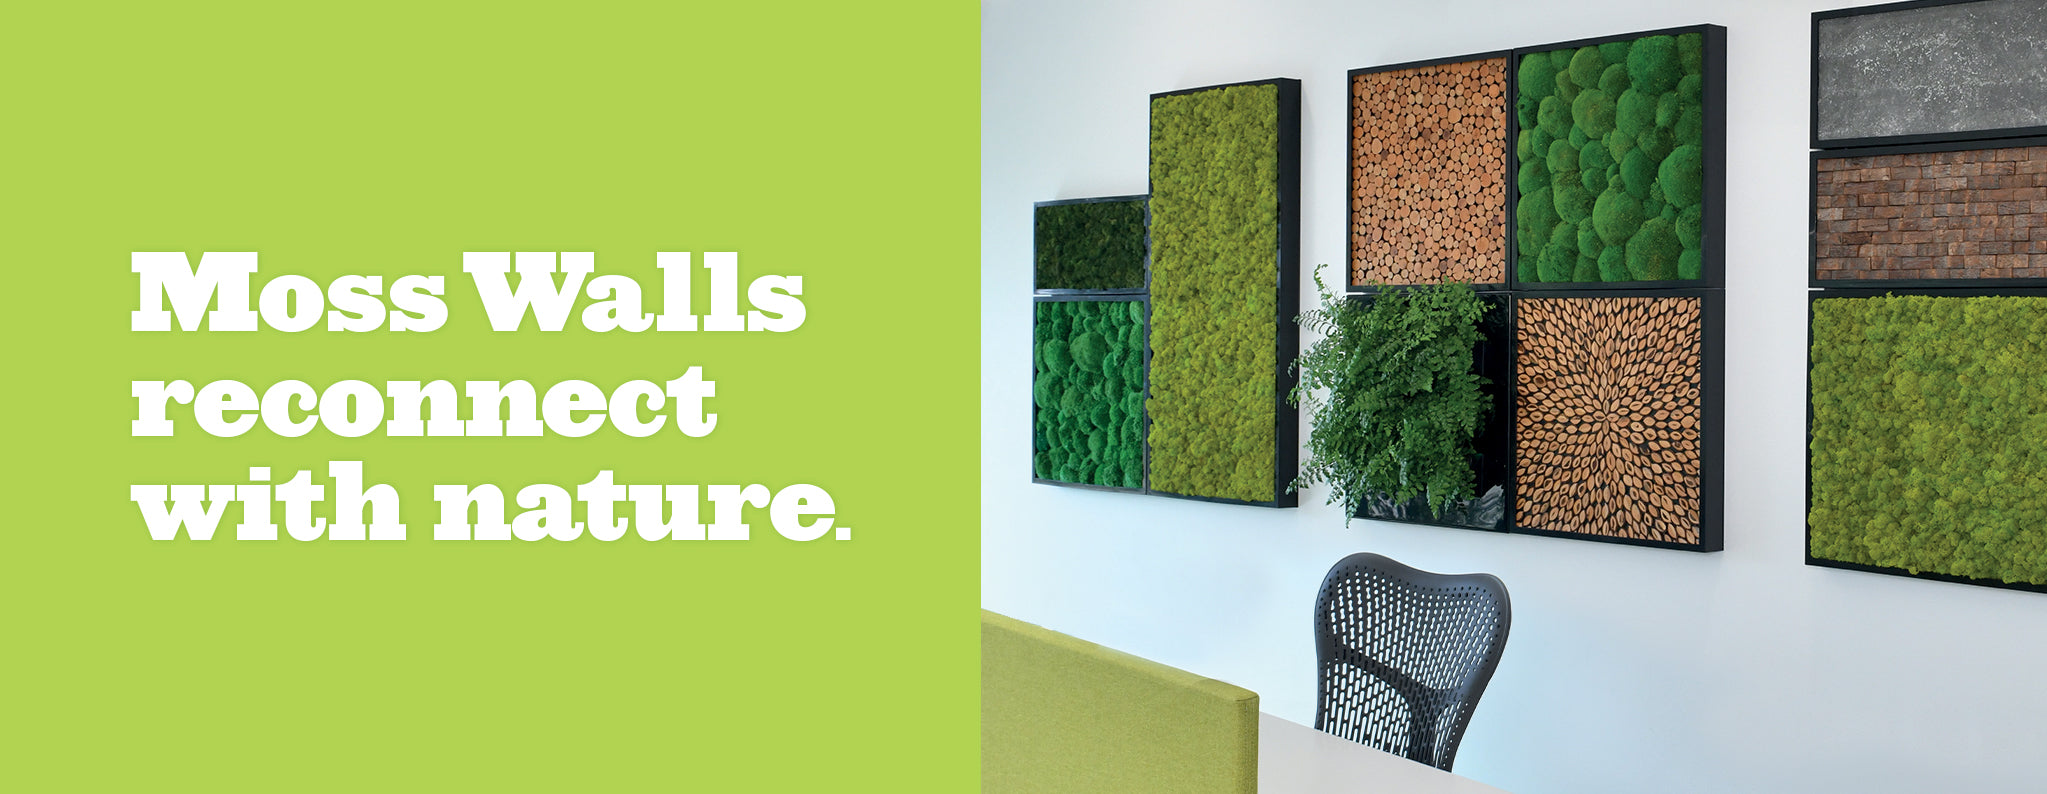 Create your natural moss wall walls using the four frame sizes, sound absorbing reindeer moss, naturally harvested bark patterns, and light stone for a calming aesthetic.